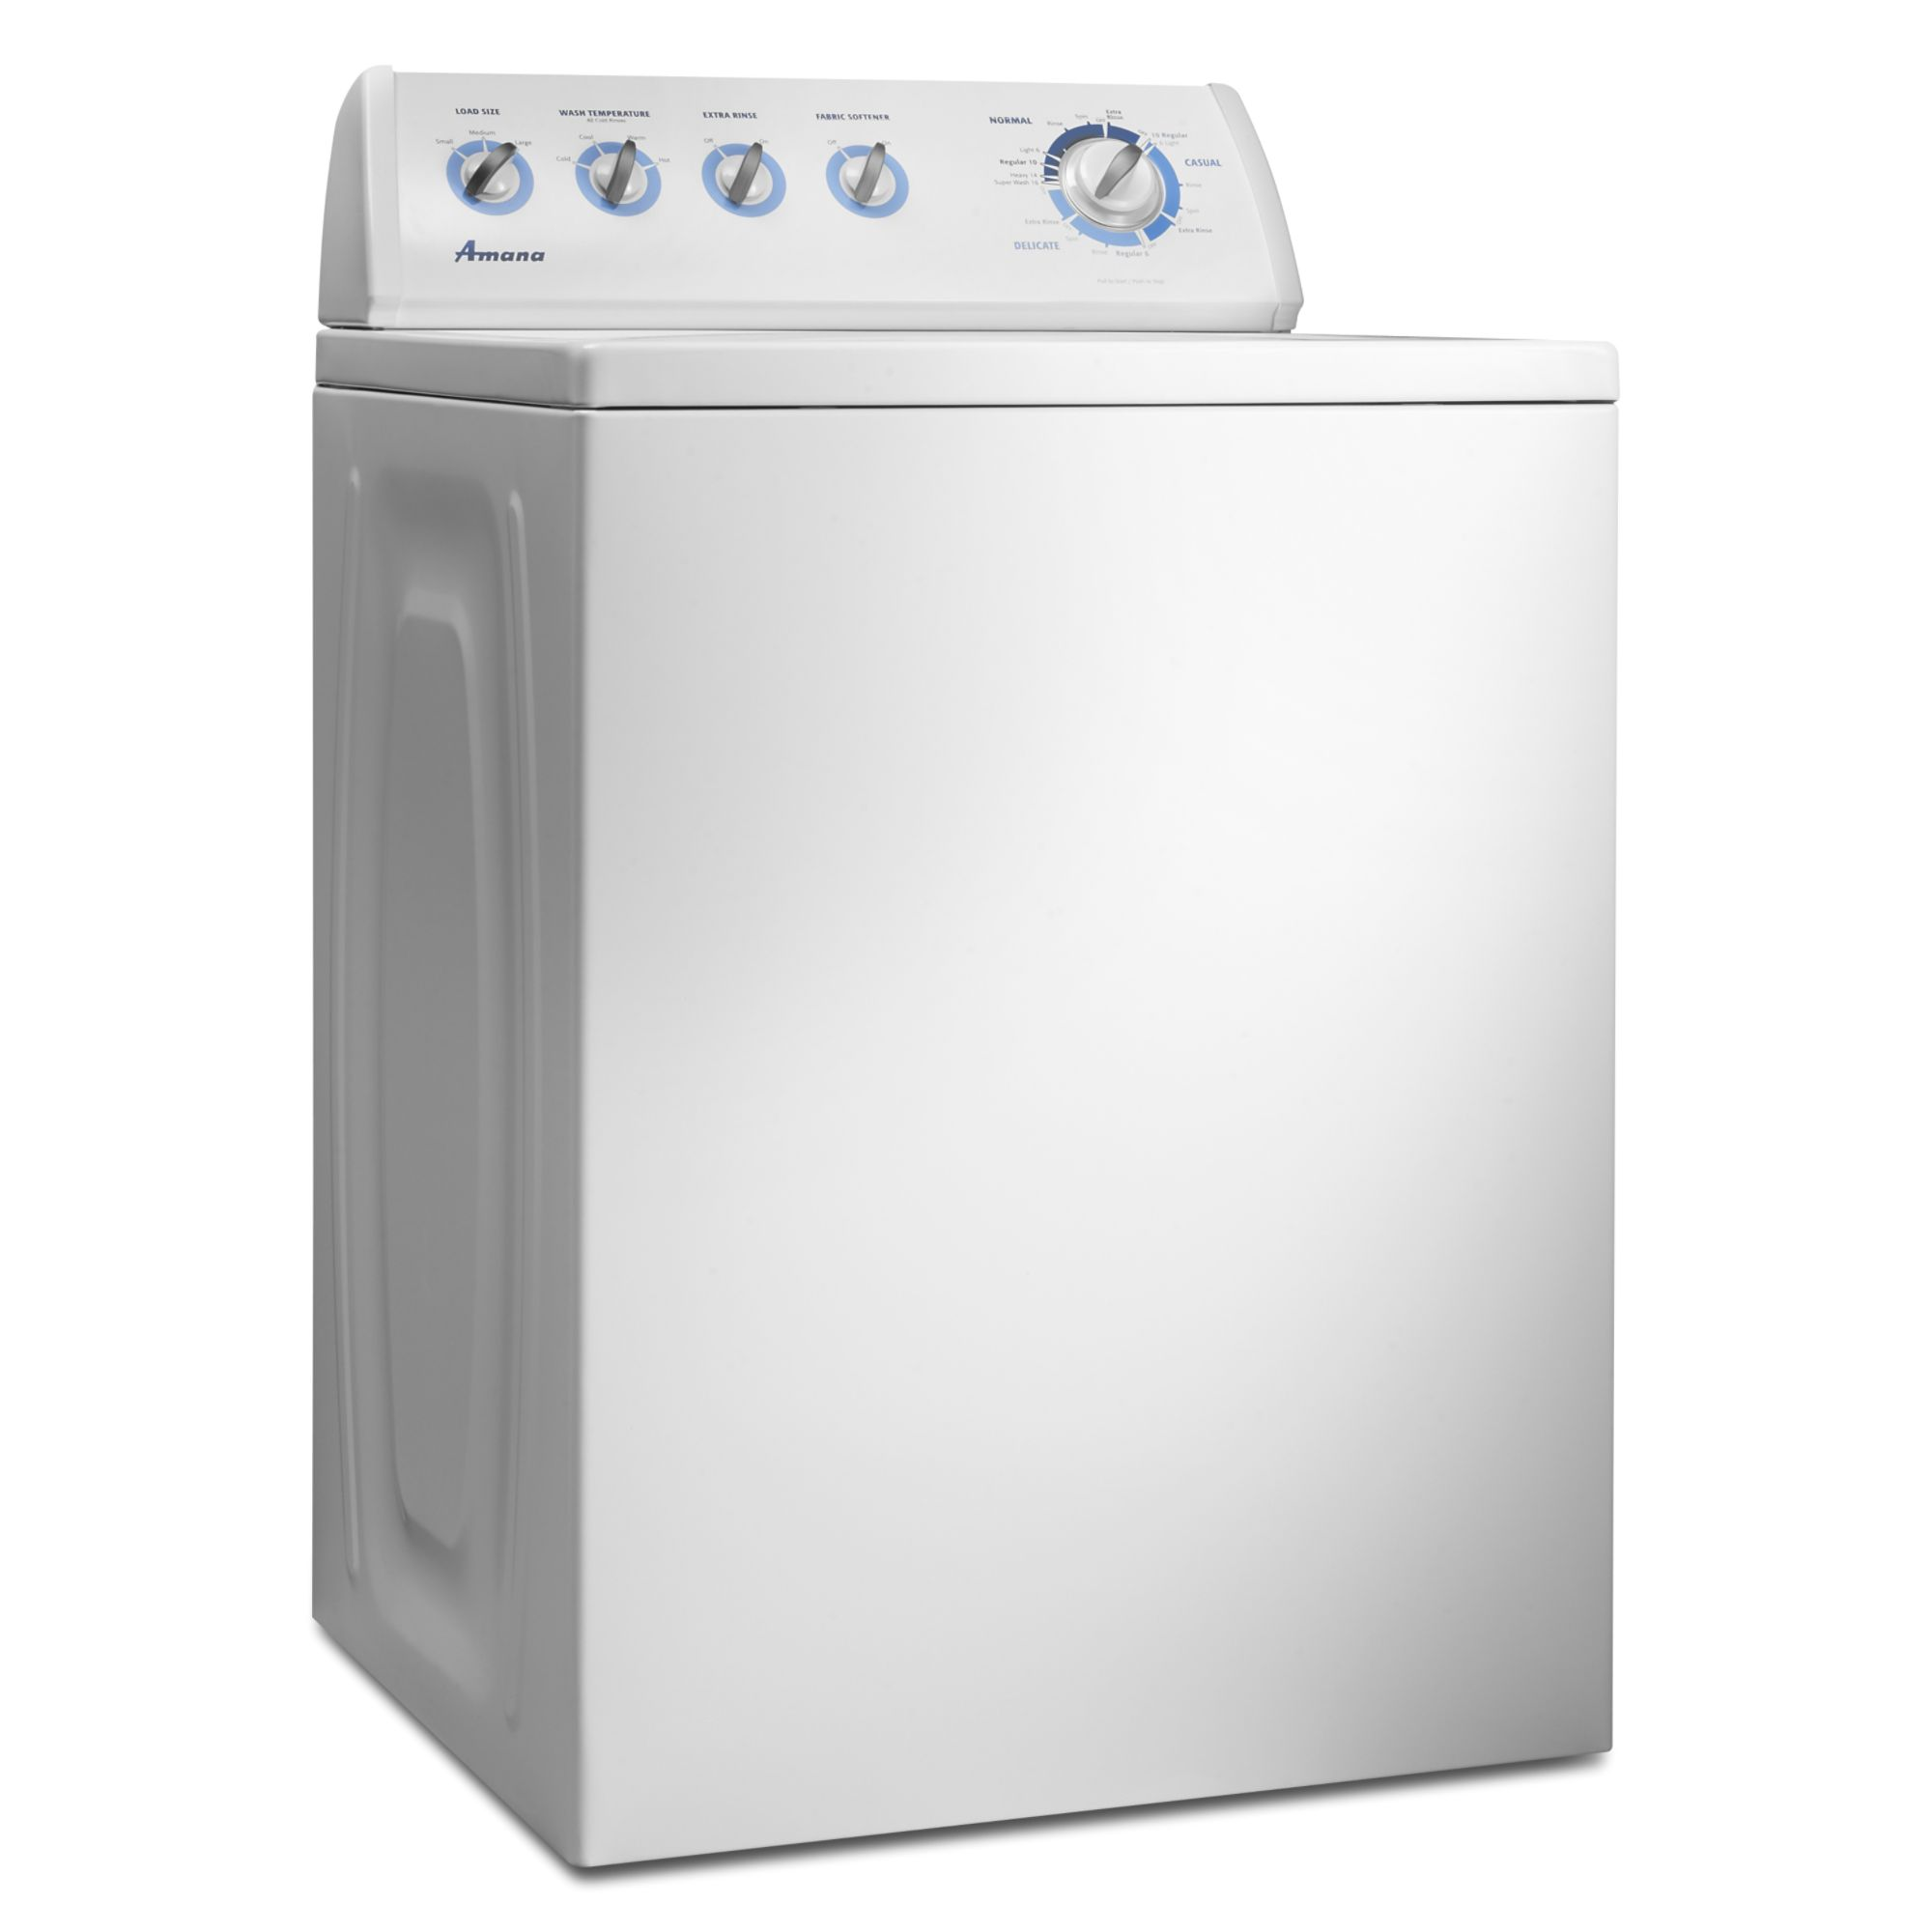 Amana 3.2 cubic foot Top-Load Washing Machine